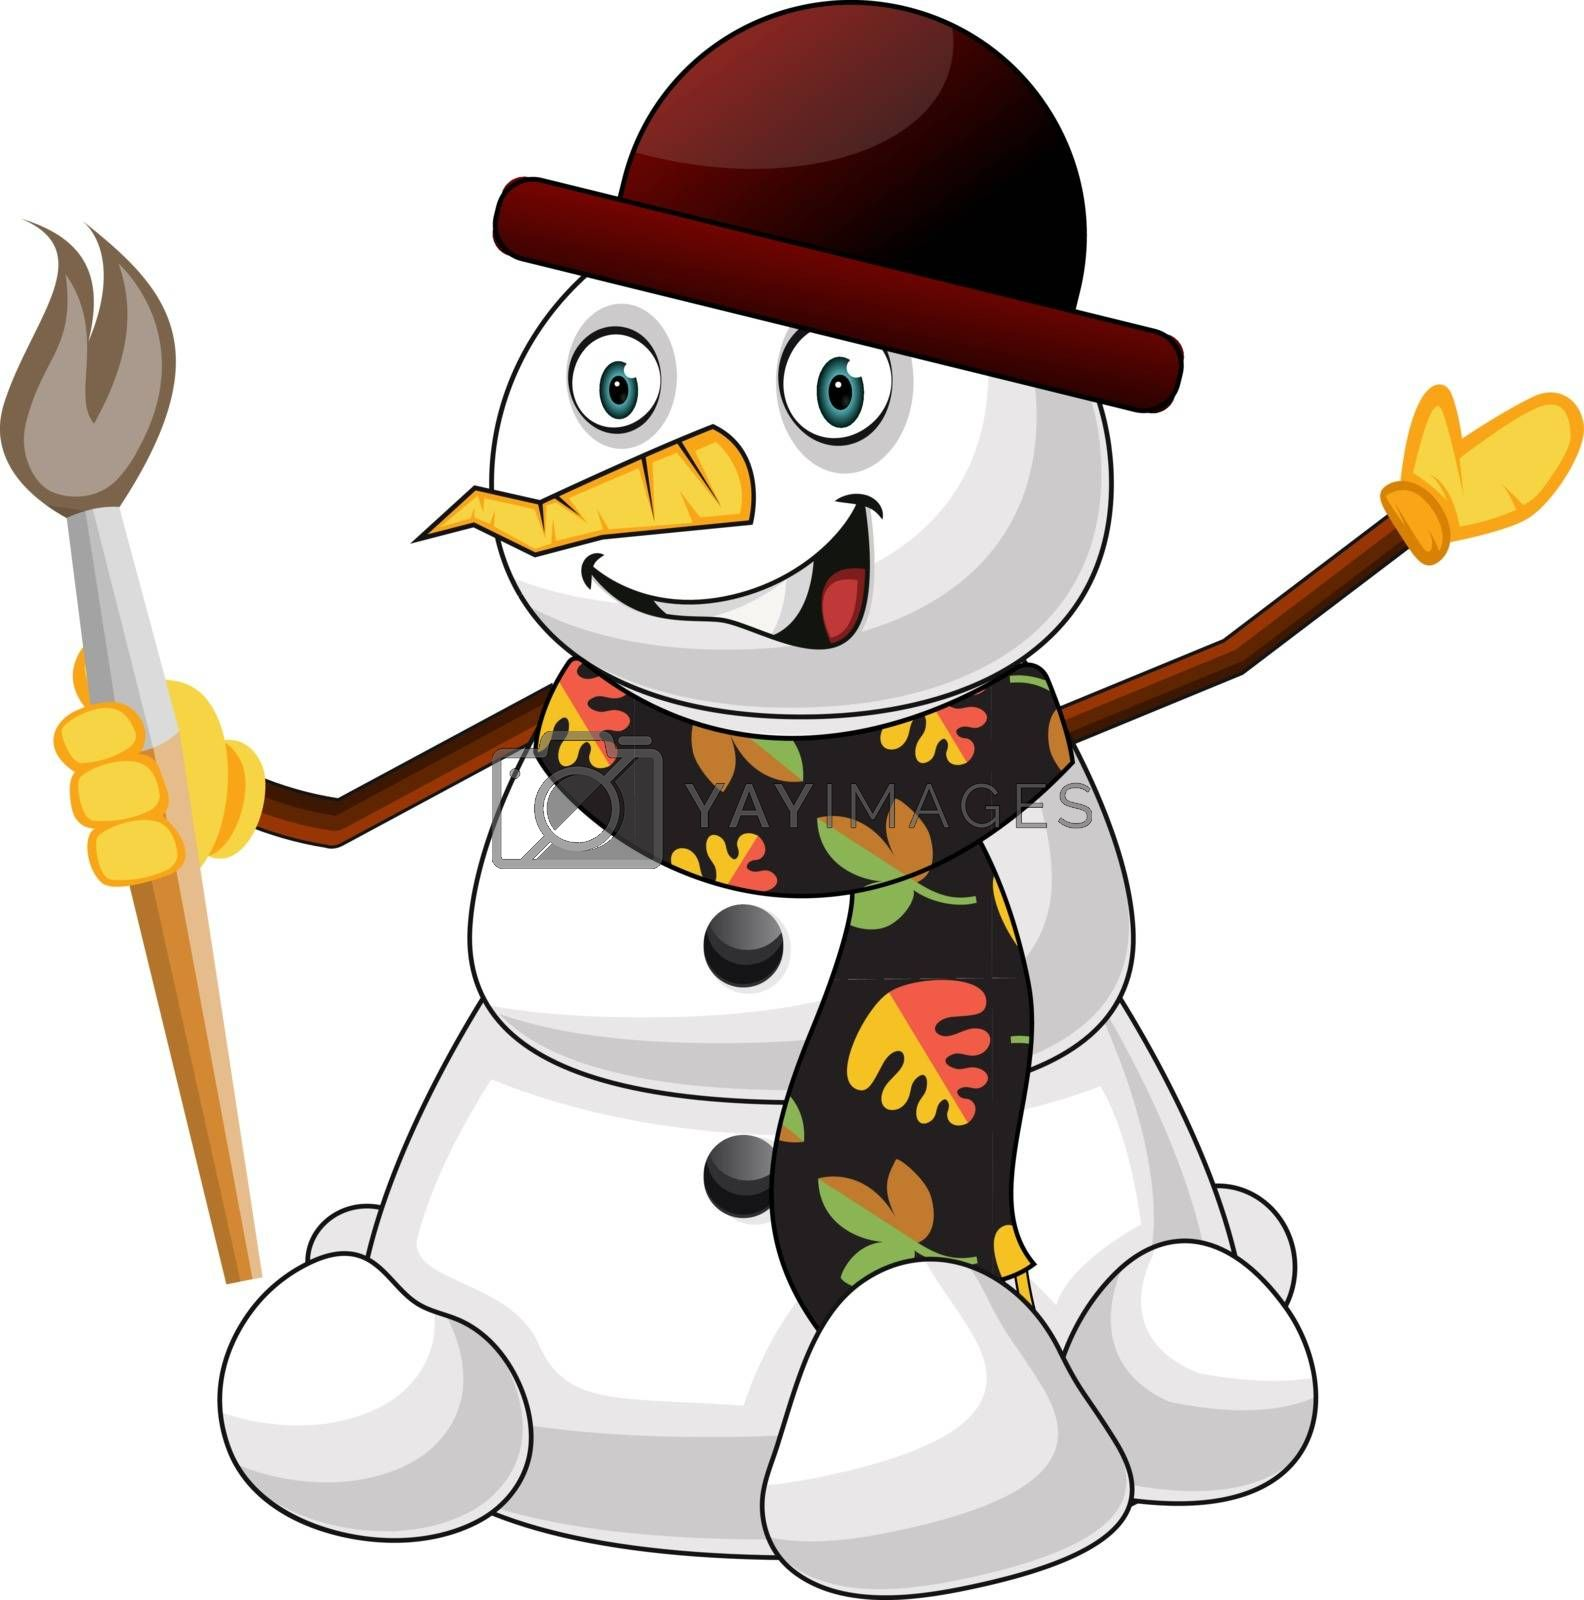 Royalty free image of Snowman with brush illustration vector on white background by Morphart